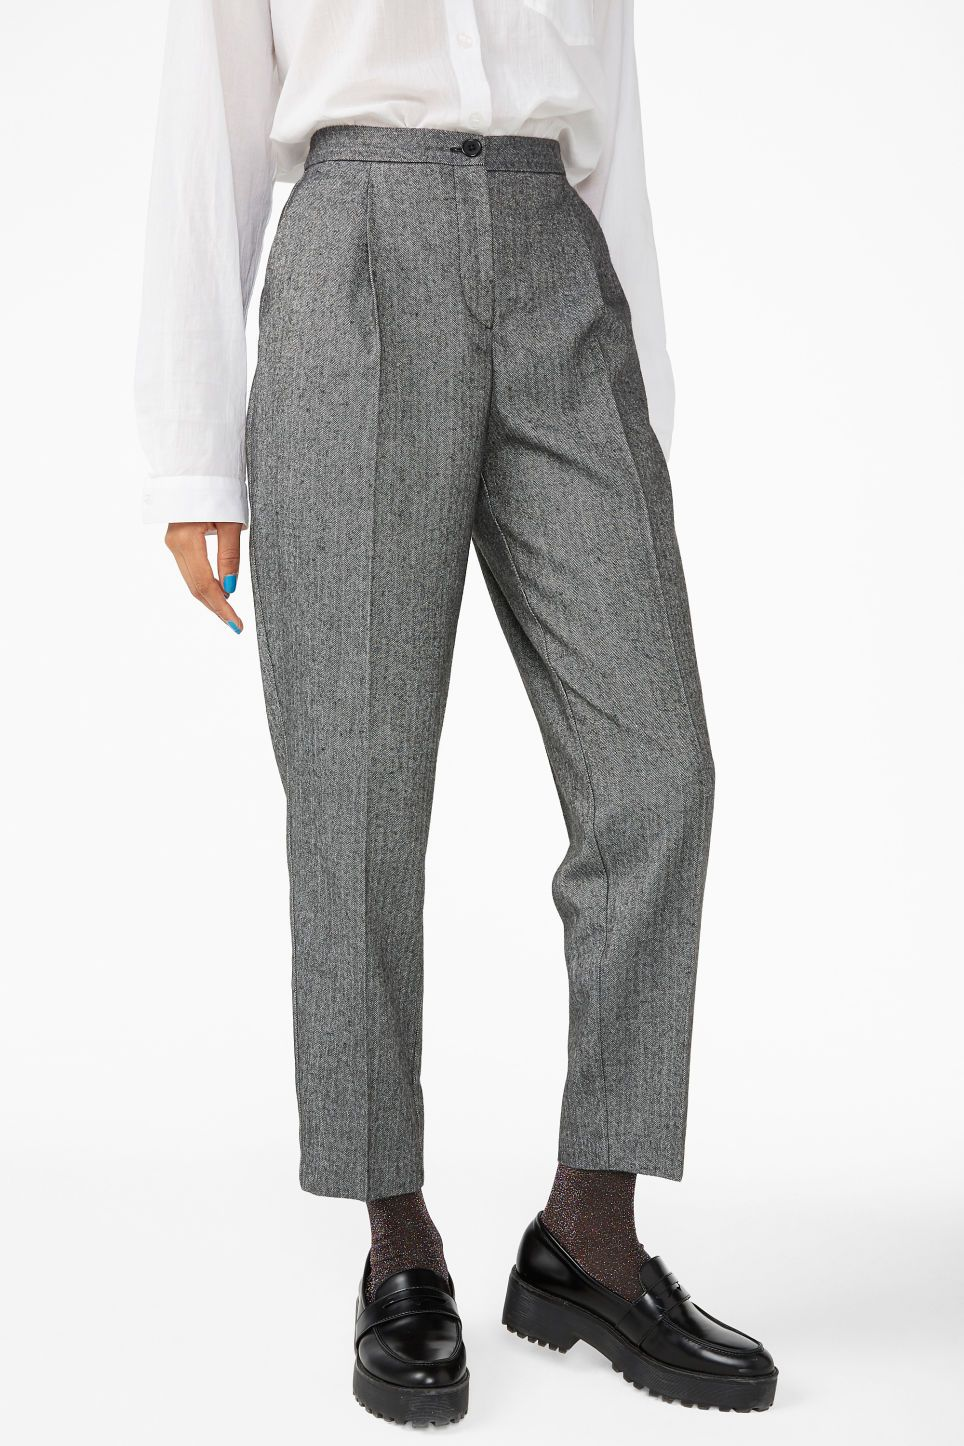 487bc70cadc5 H&M Wide-cut Jersey Pants - Black | s/s 2018 list of blatant materalism |  Pants, Black pants, Checked trousers